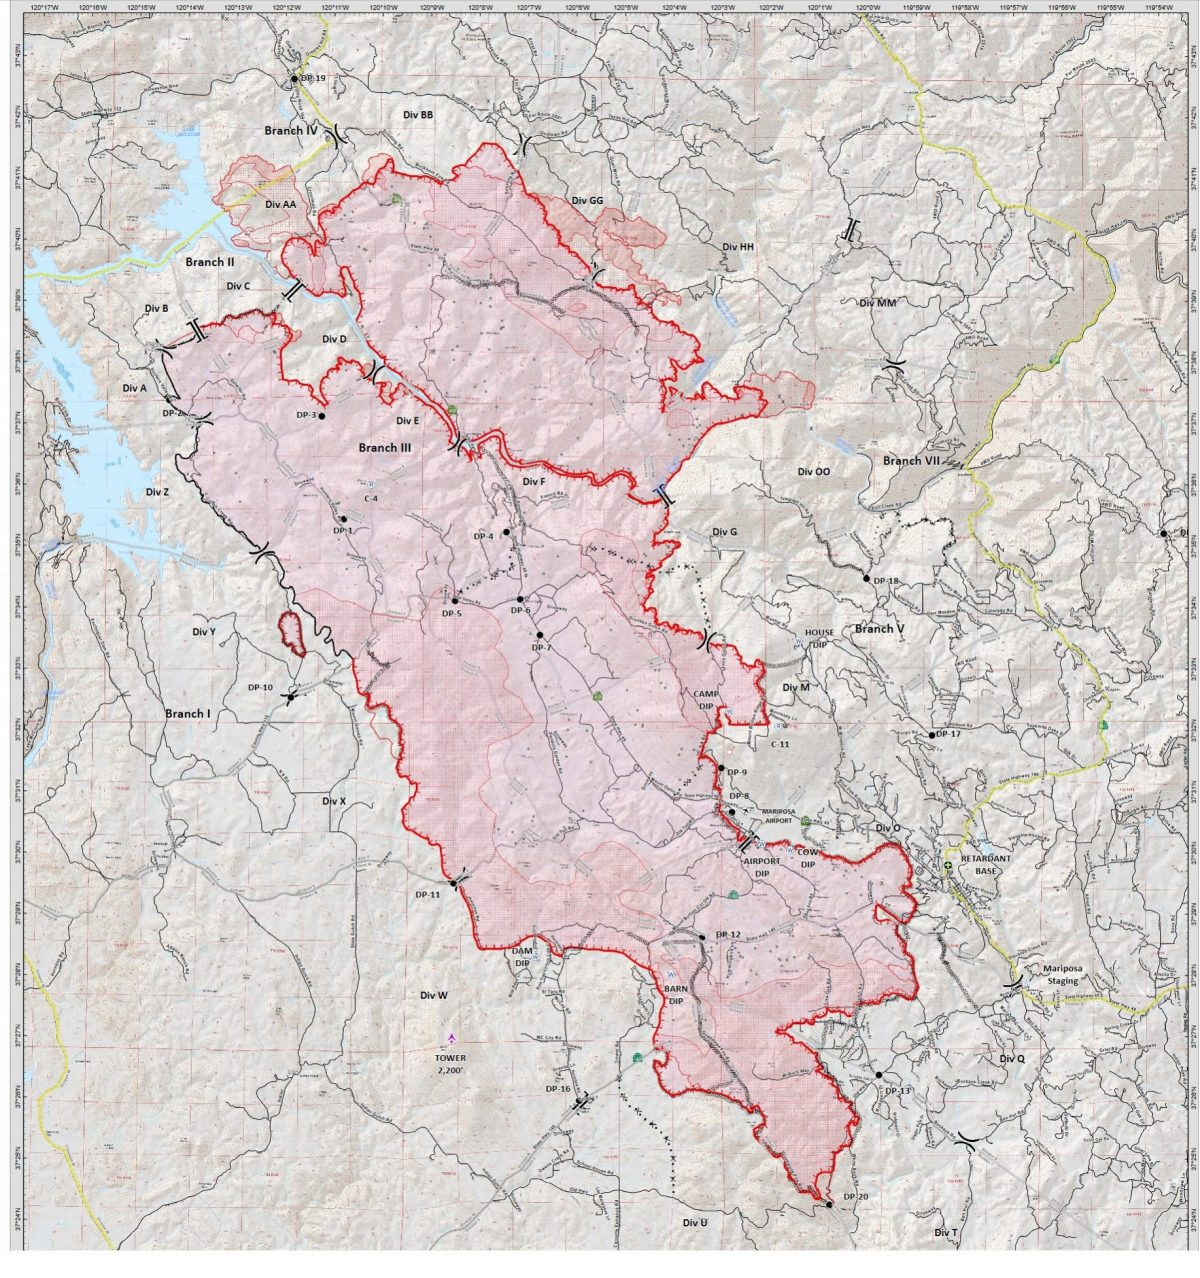 Cal Fire Map >> Good Progress On Detwiler Fire Now 25 Percent Contained | Sierra News Online